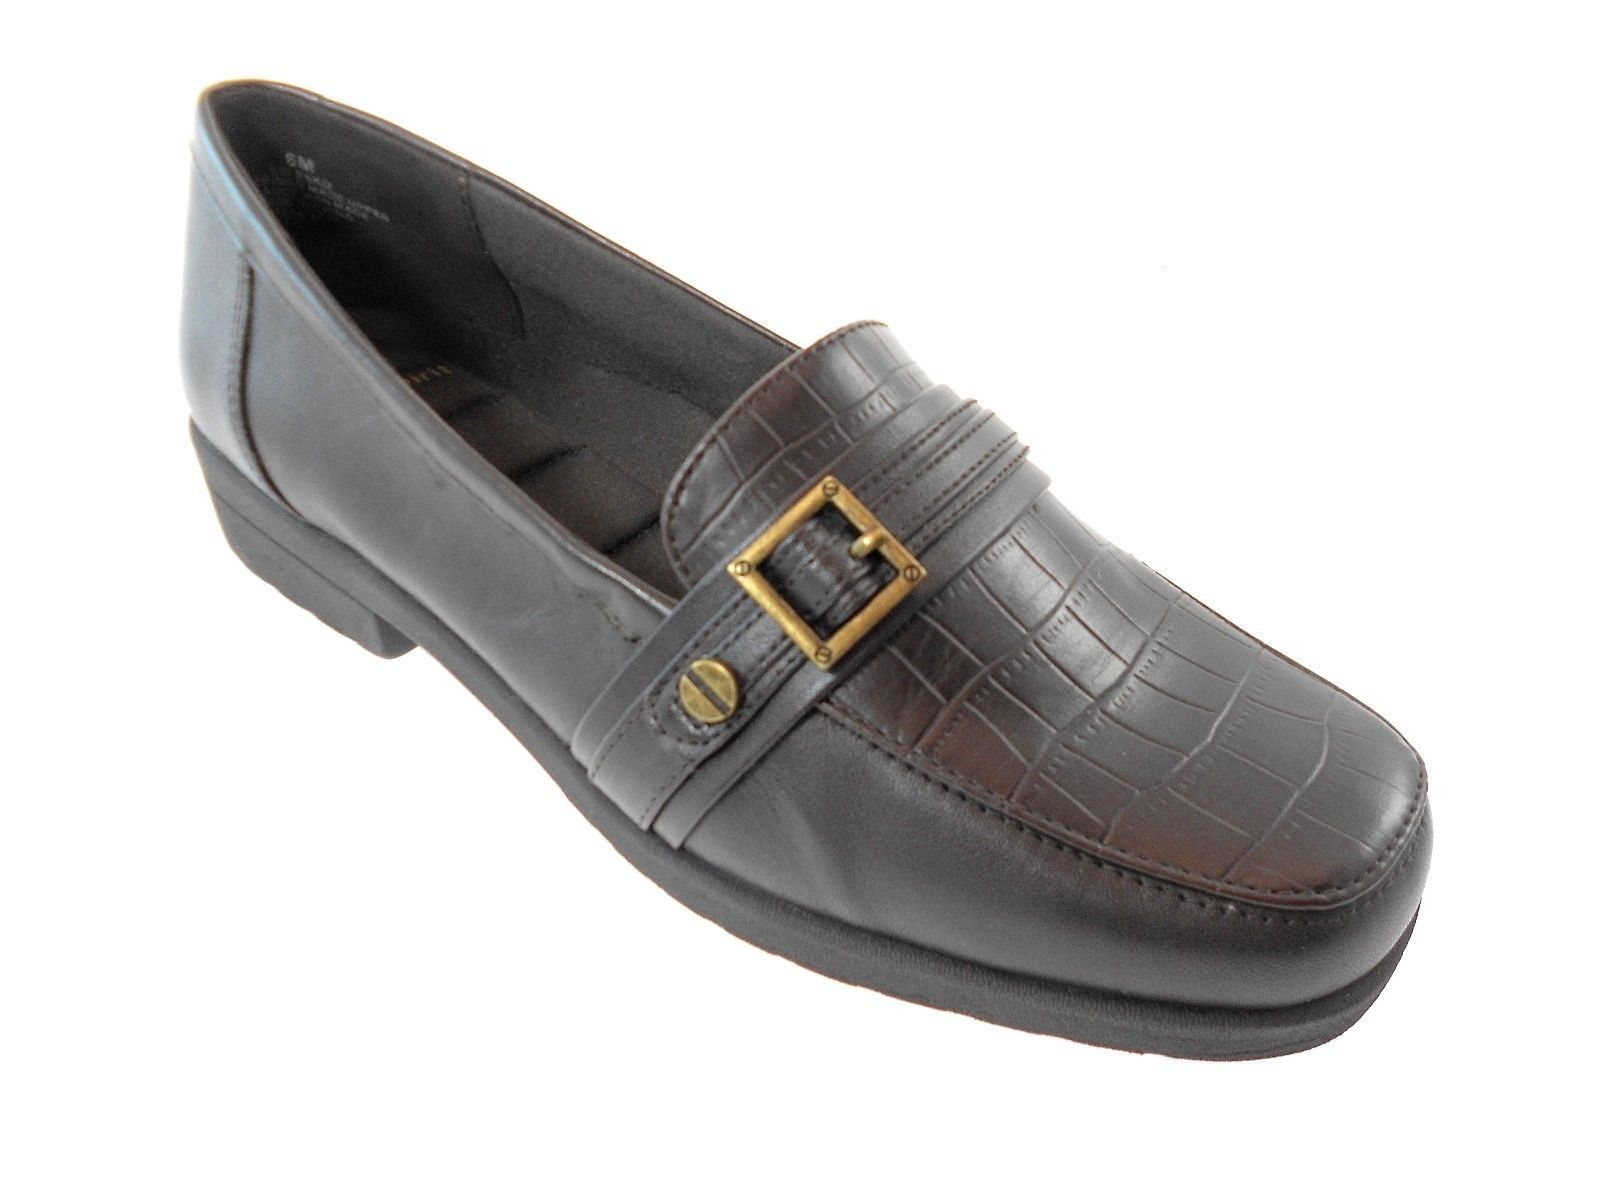 BROWN LEATHER SHOES SIZE 6 - $50.15